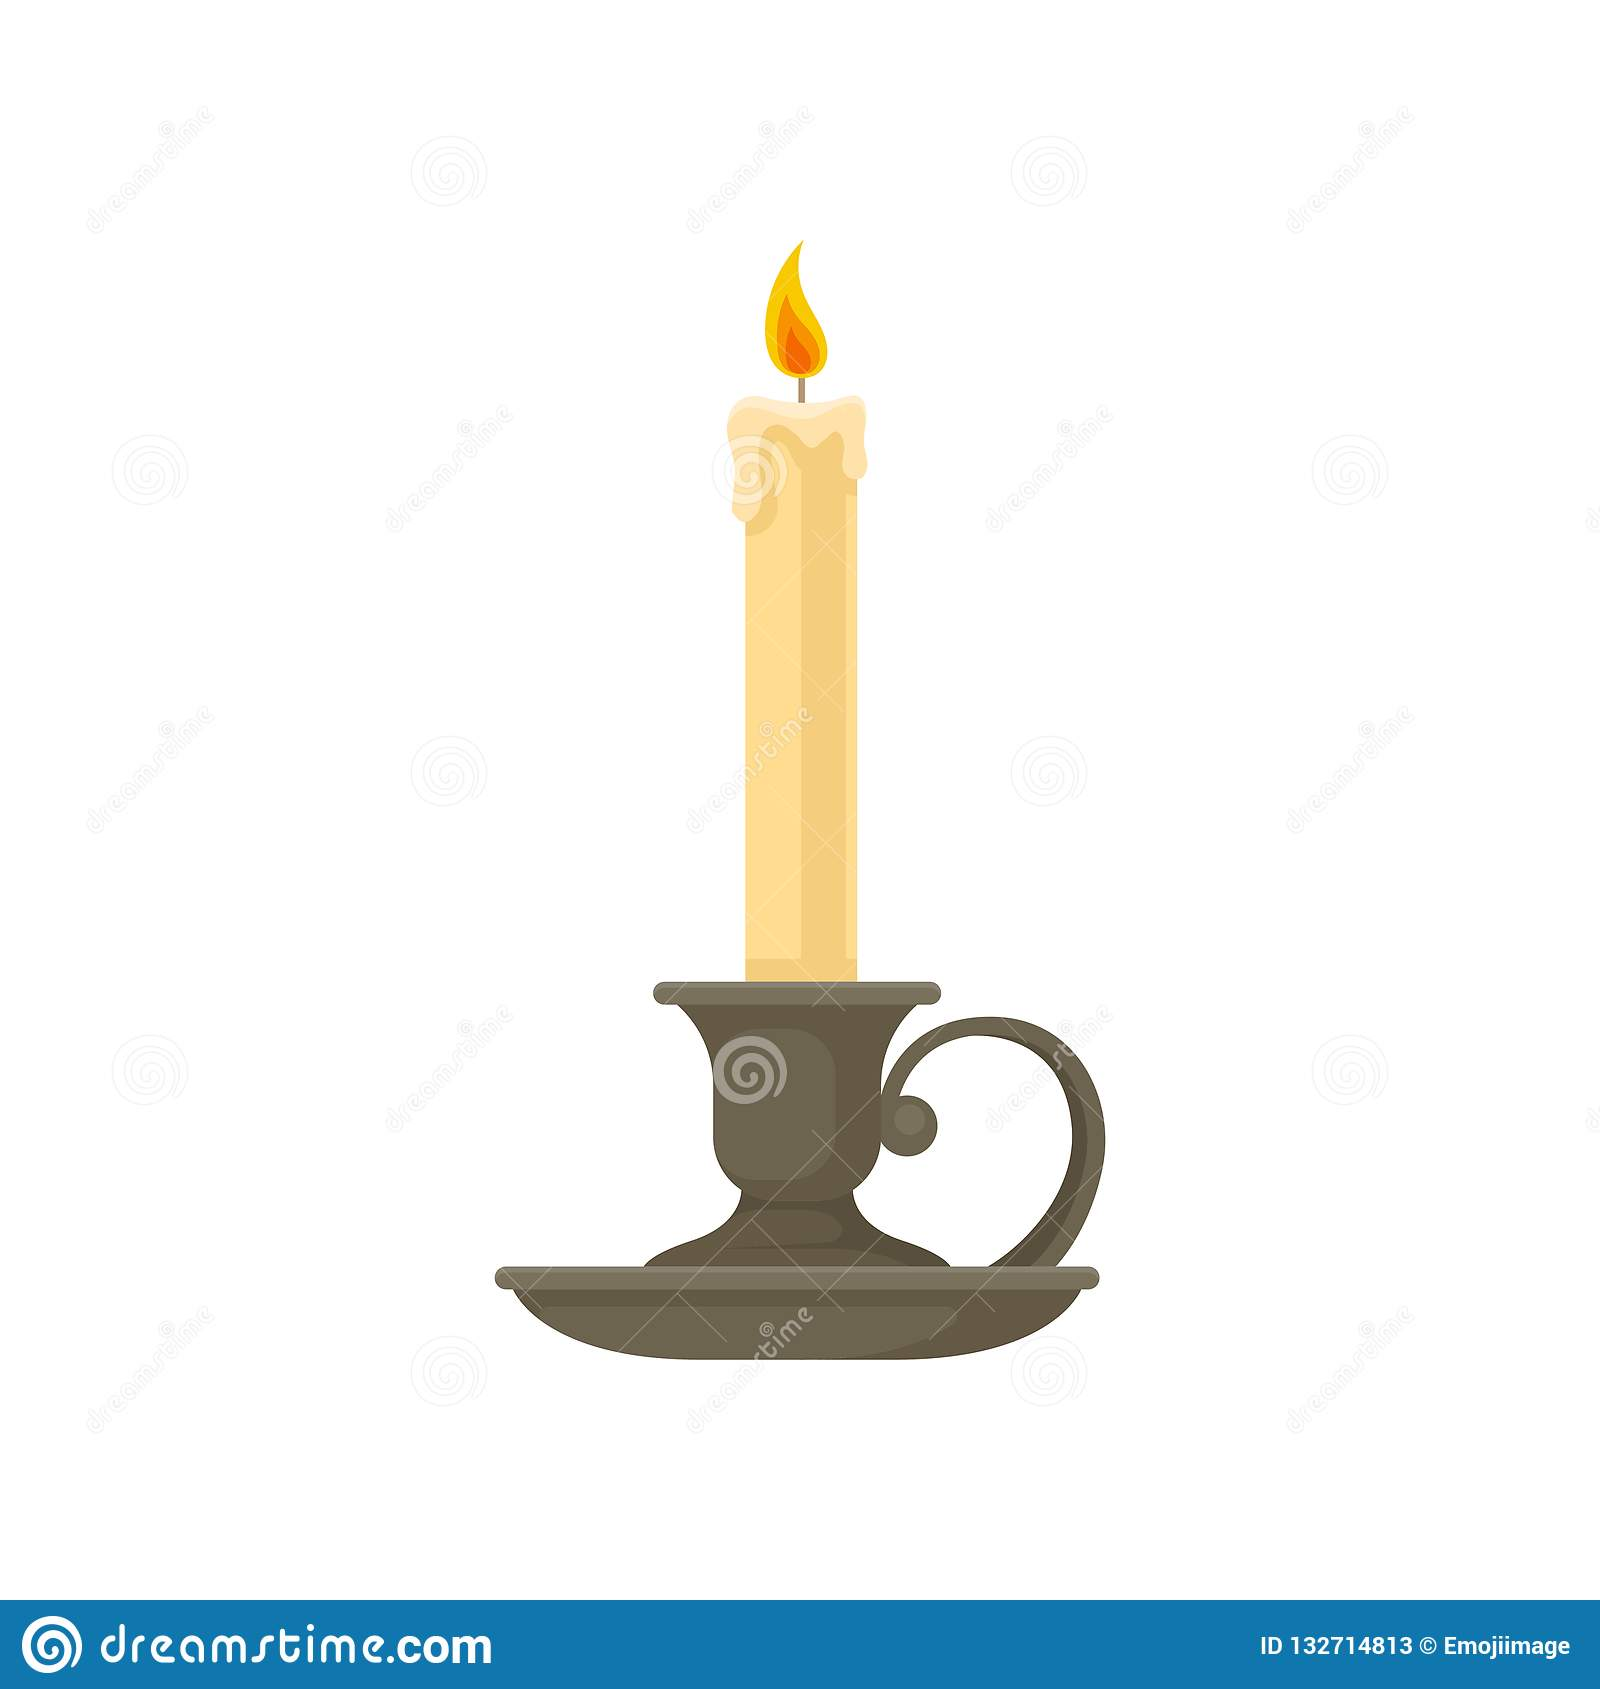 Burning Candle In A Vintage Candle Holder Candlestick Vector Illustration On A White Background Stock Vector Illustration Of Historic Fire 132714813